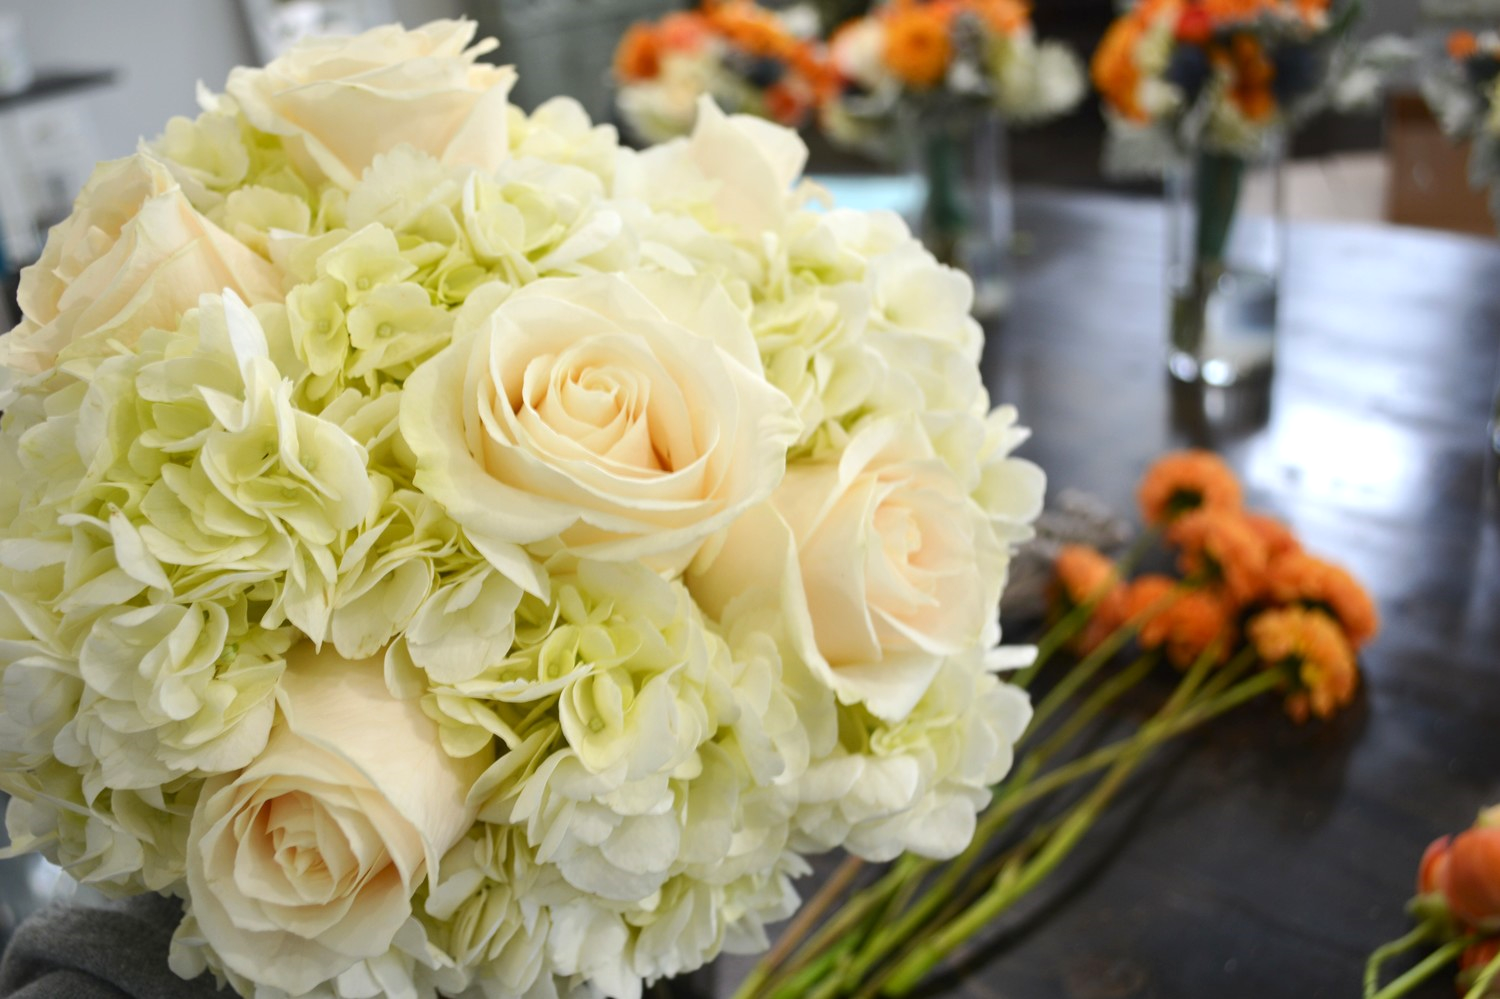 For Megan's bouquet...I started with the white hydrangeas and lovely cream roses